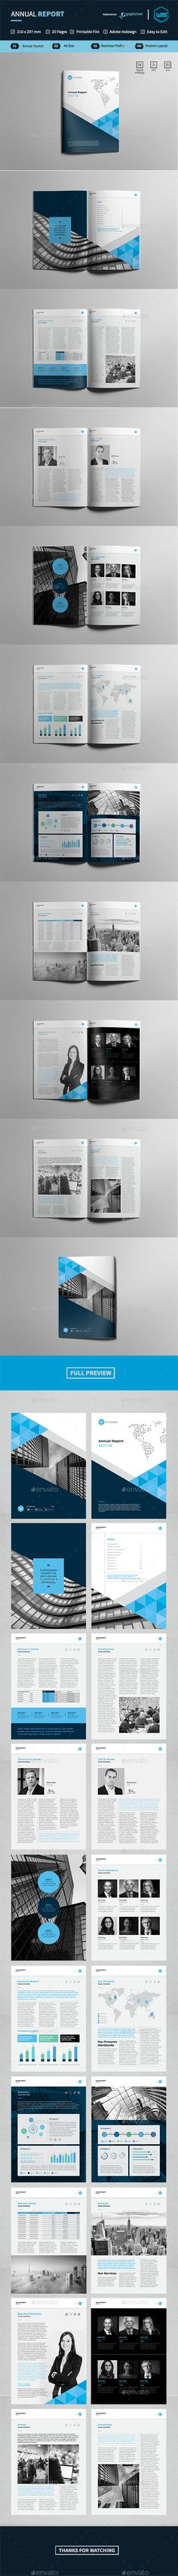 Annual Report — InDesign INDD #210x297 • Download ➝ https://graphicriver.net/item/annual-report/19453603?ref=pxcr